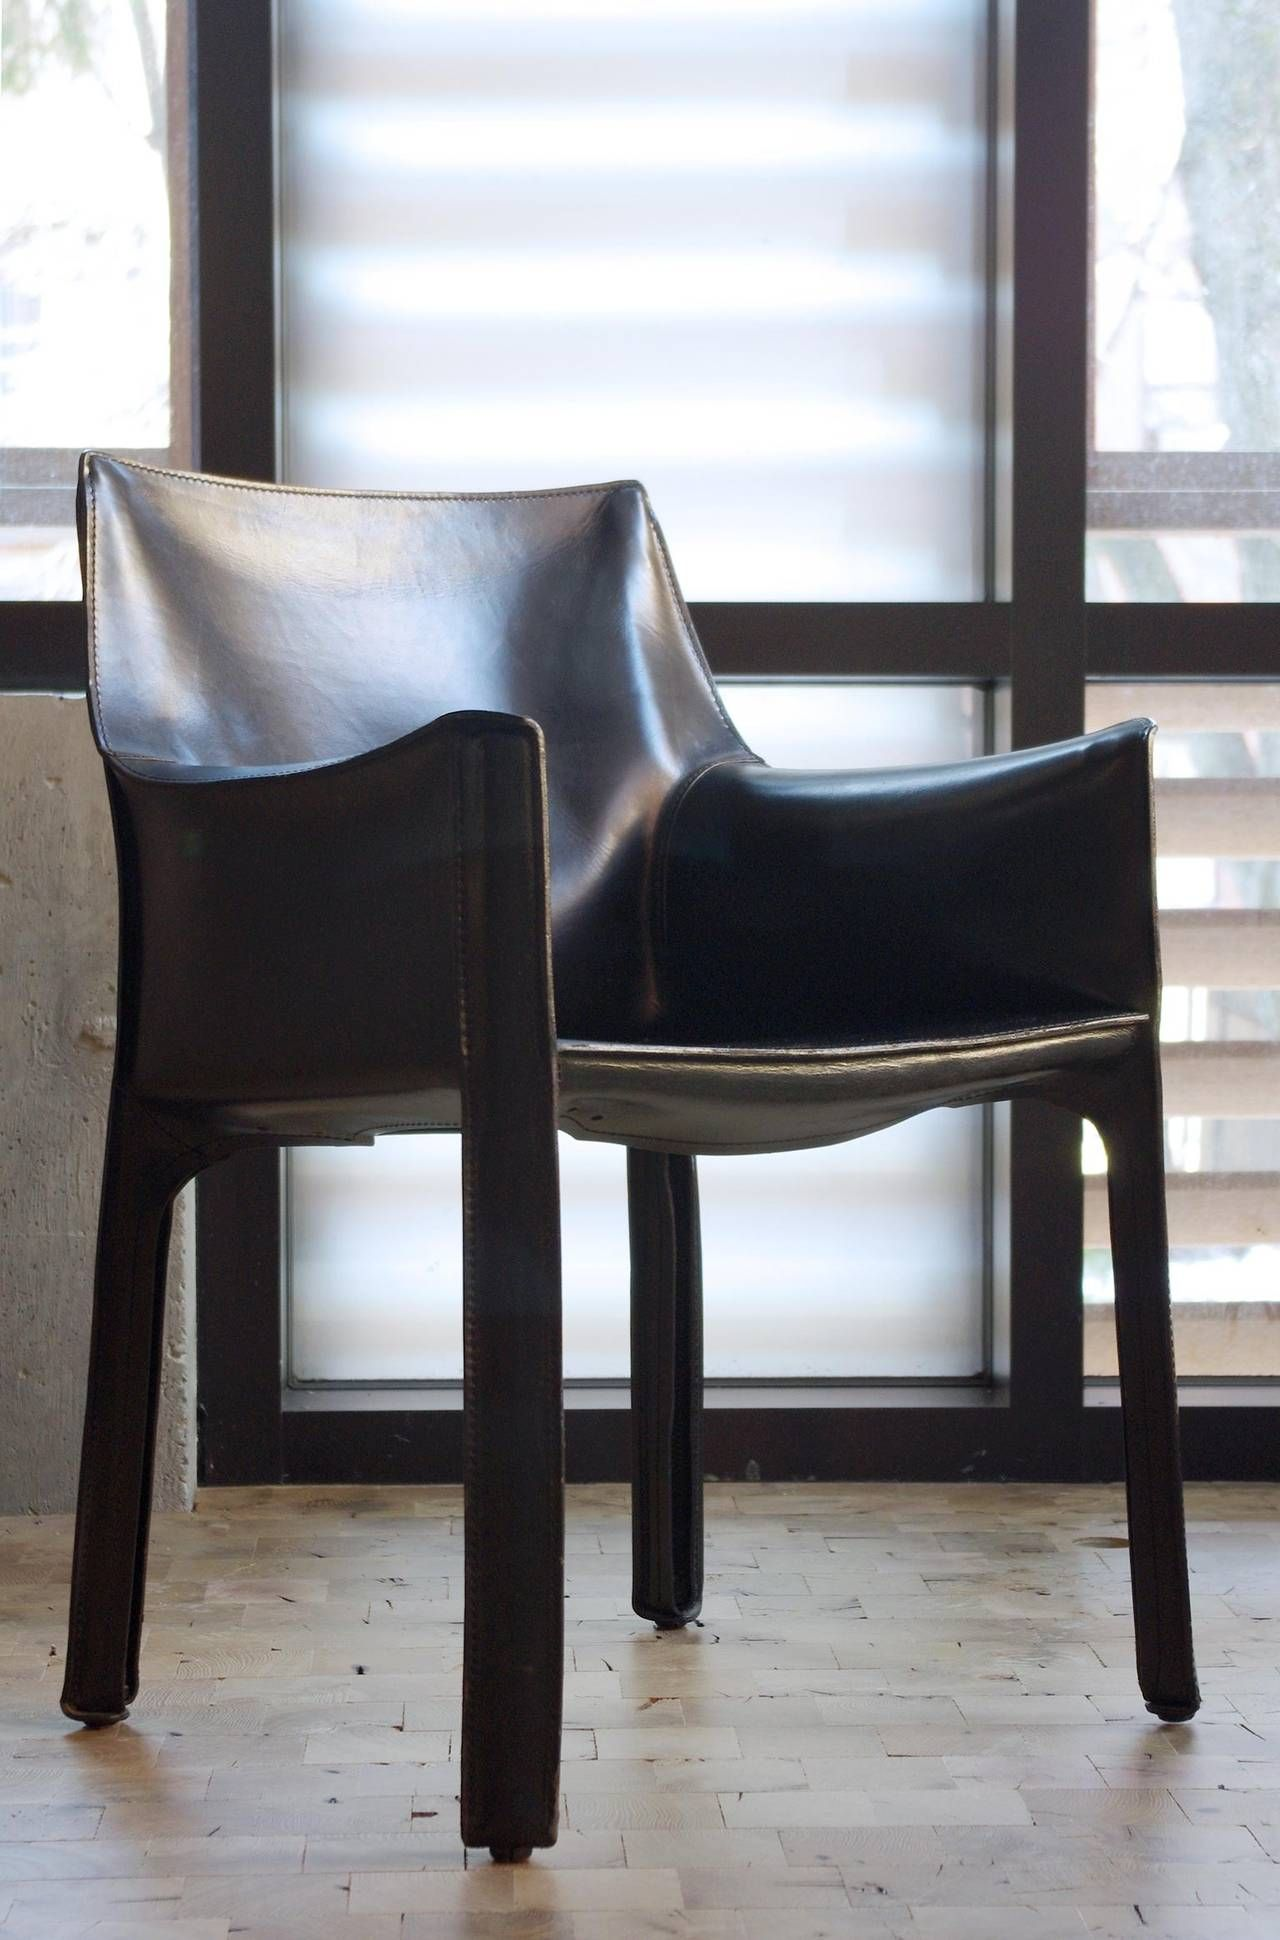 Wondrous Set Of Six 413 Cab Chairs By Mario Bellini For Cassina In Ocoug Best Dining Table And Chair Ideas Images Ocougorg